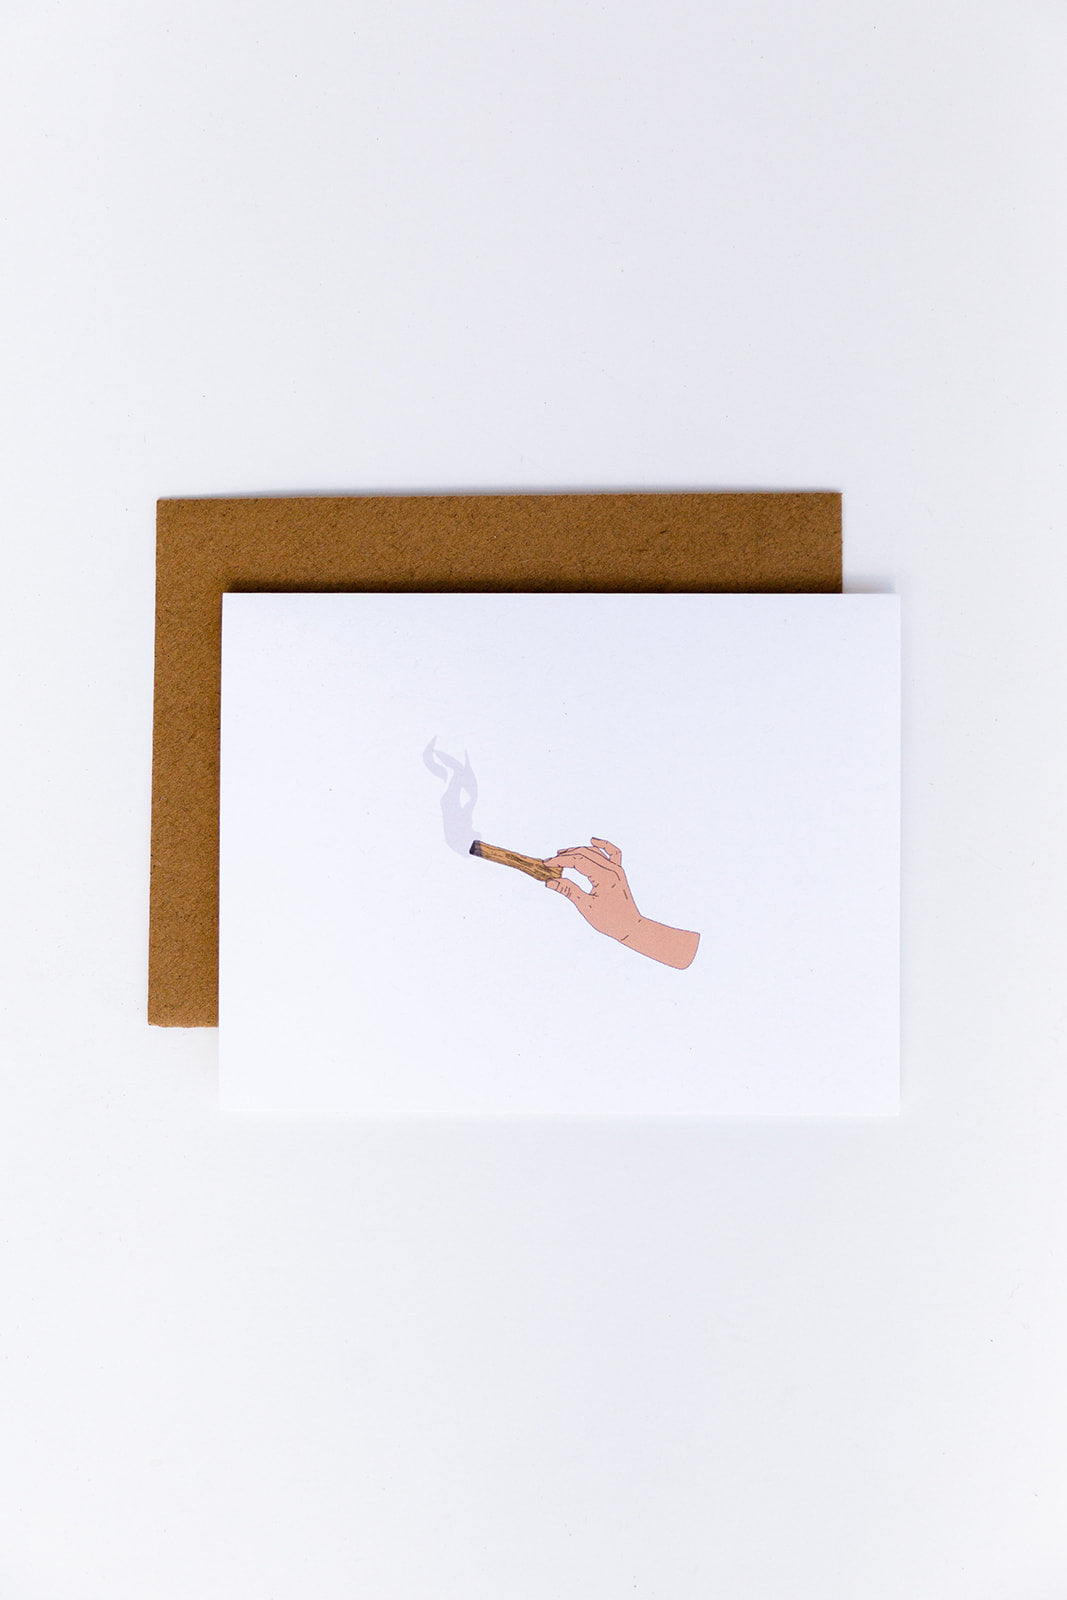 LIZ FRANCES STUDIO - PALO SANTO CARD